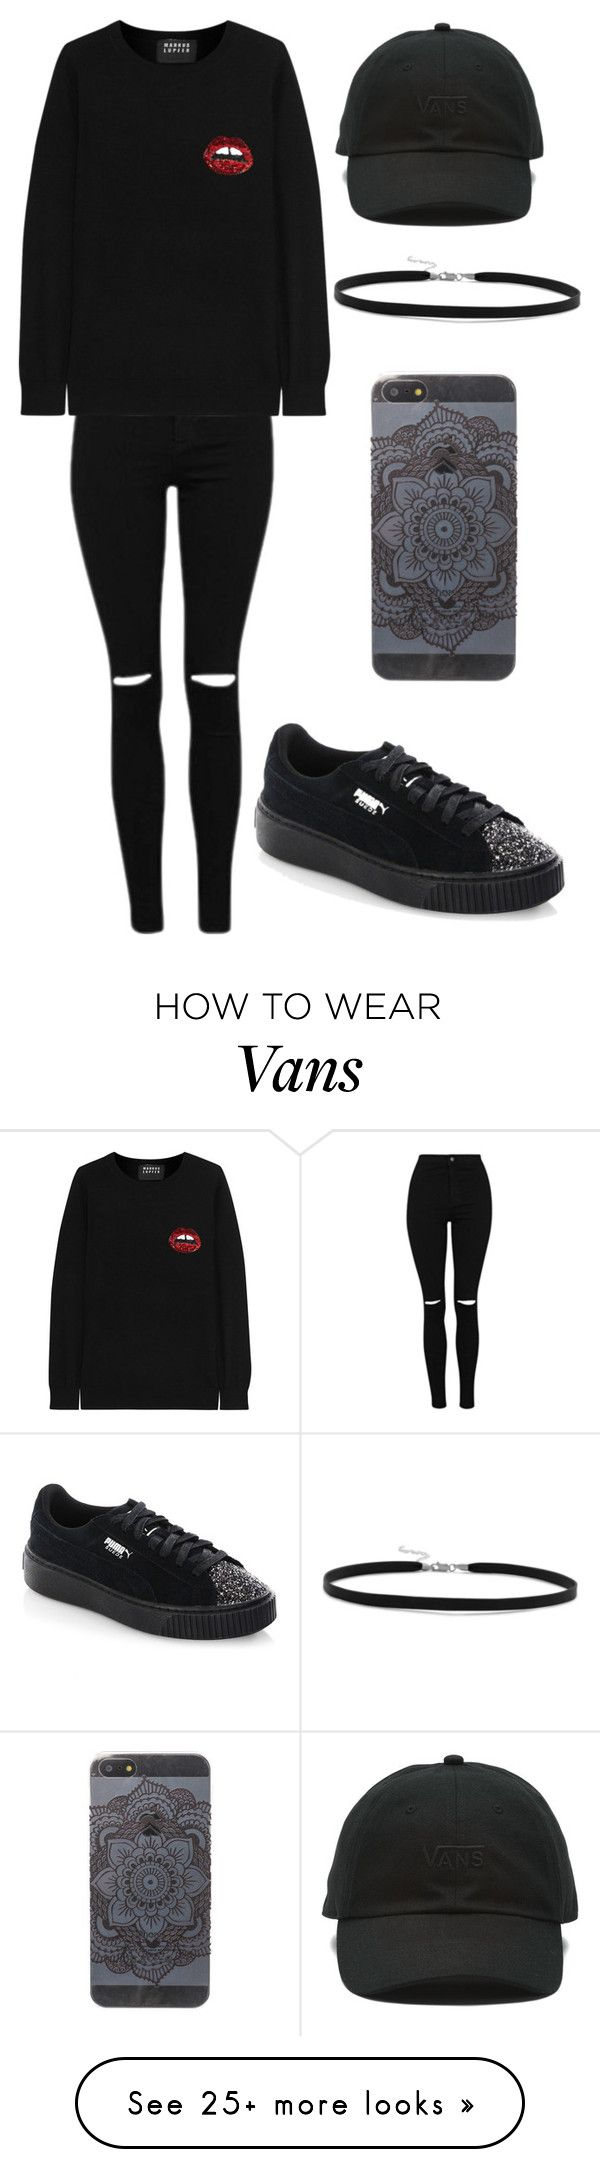 """Outfit"" by andreeadeeix12 on Polyvore featuring Markus Lupfer, Puma, Vans and BillyTheTree"